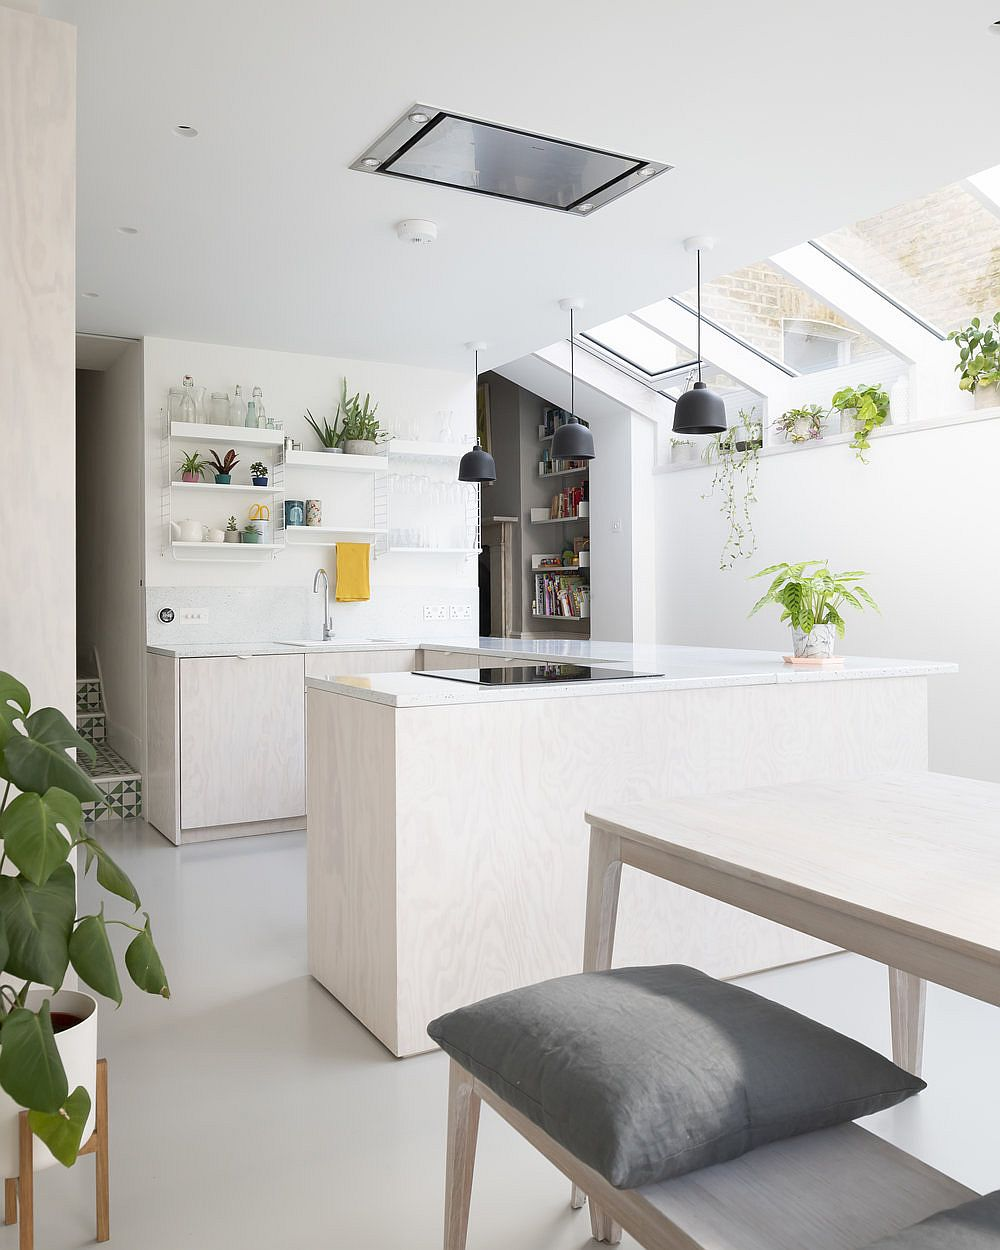 Greenery and accents in the kitchen bring color to an otherwise neutral interior in white